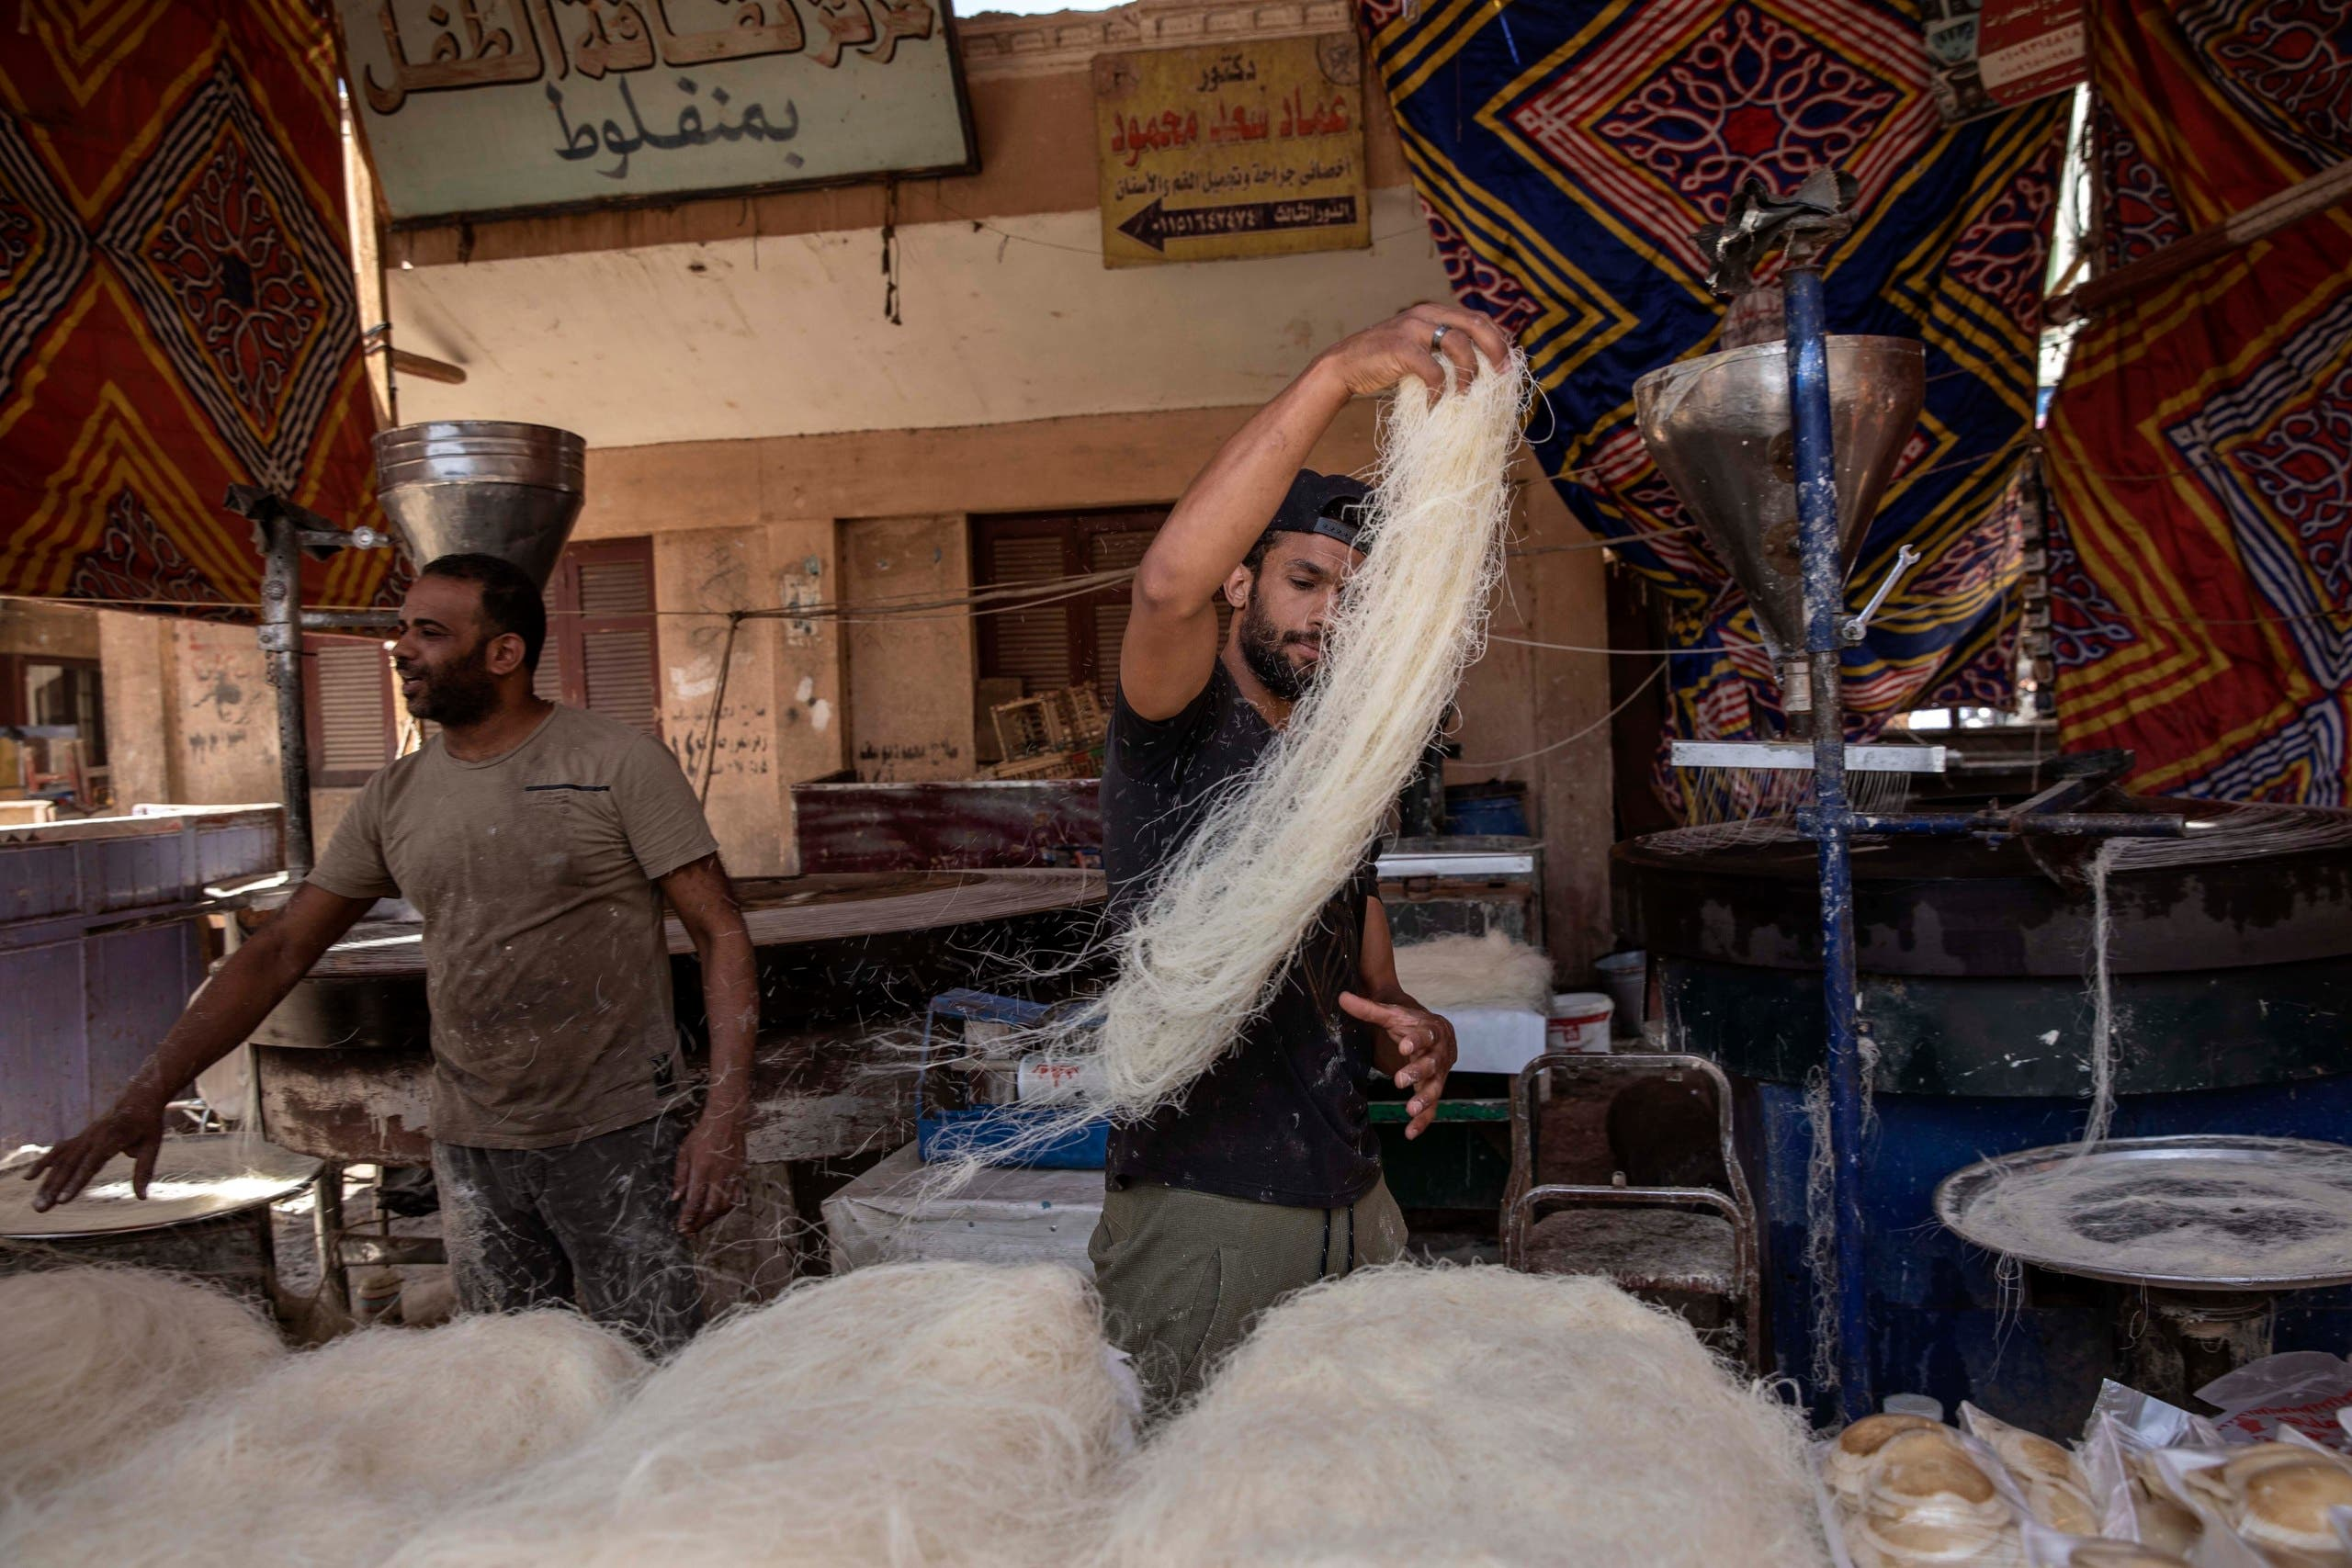 28-year-old football defender Mahrous Mahmoud, right, makes Ramadan sweets at a souq, in Manfalut, Egypt. (AP)